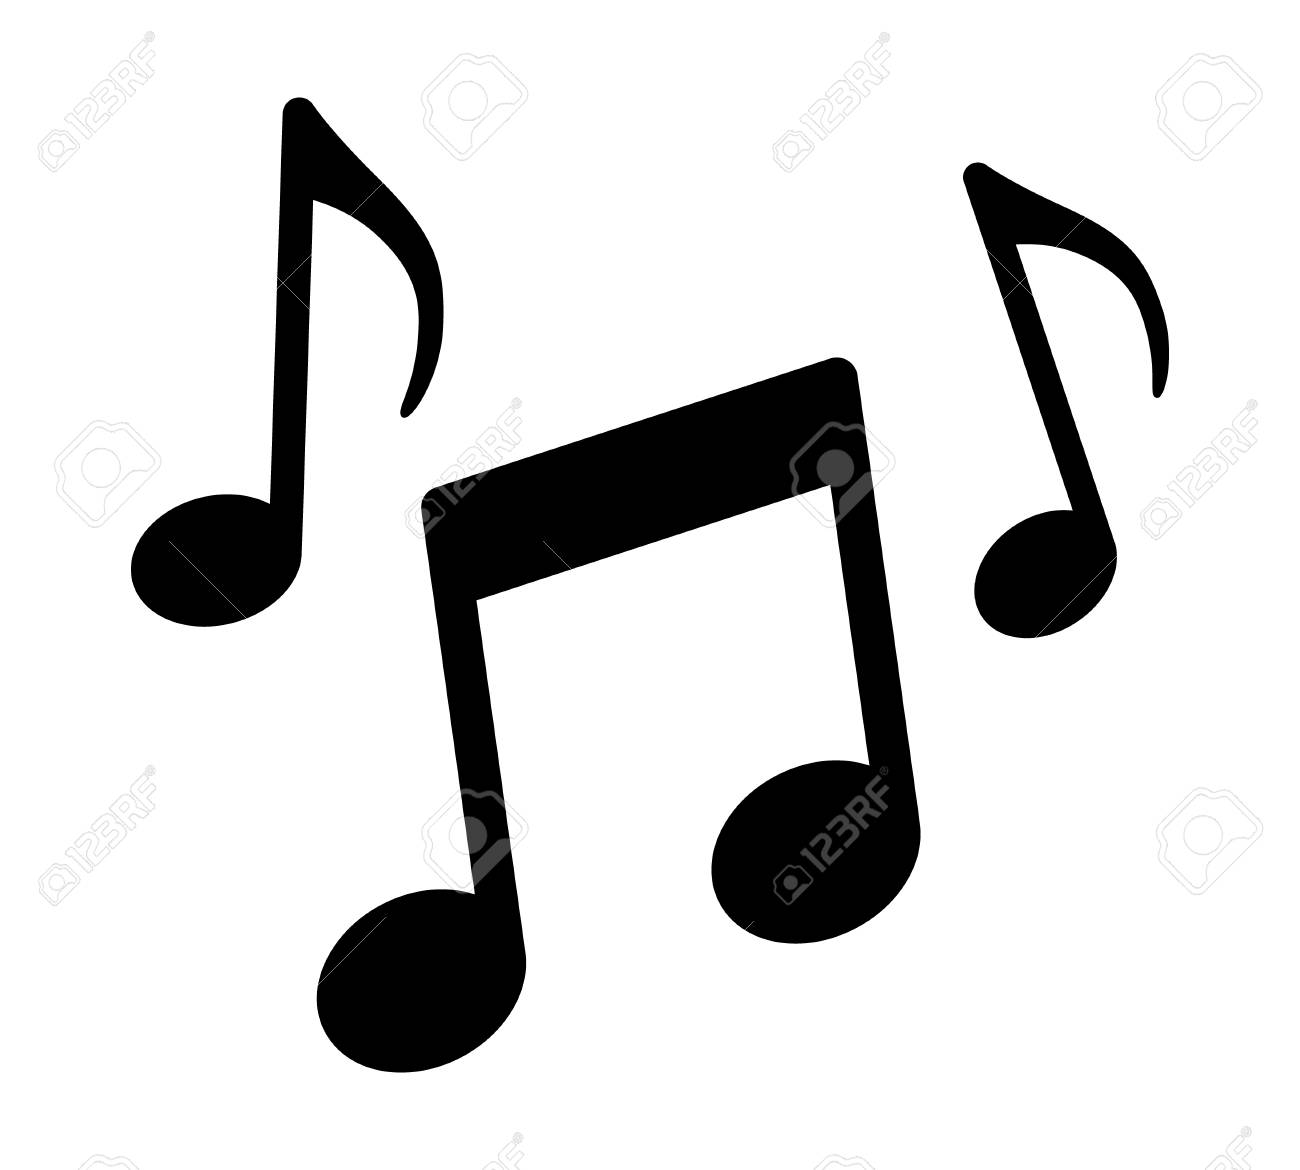 Music Note Vector Free Download Clip Art.